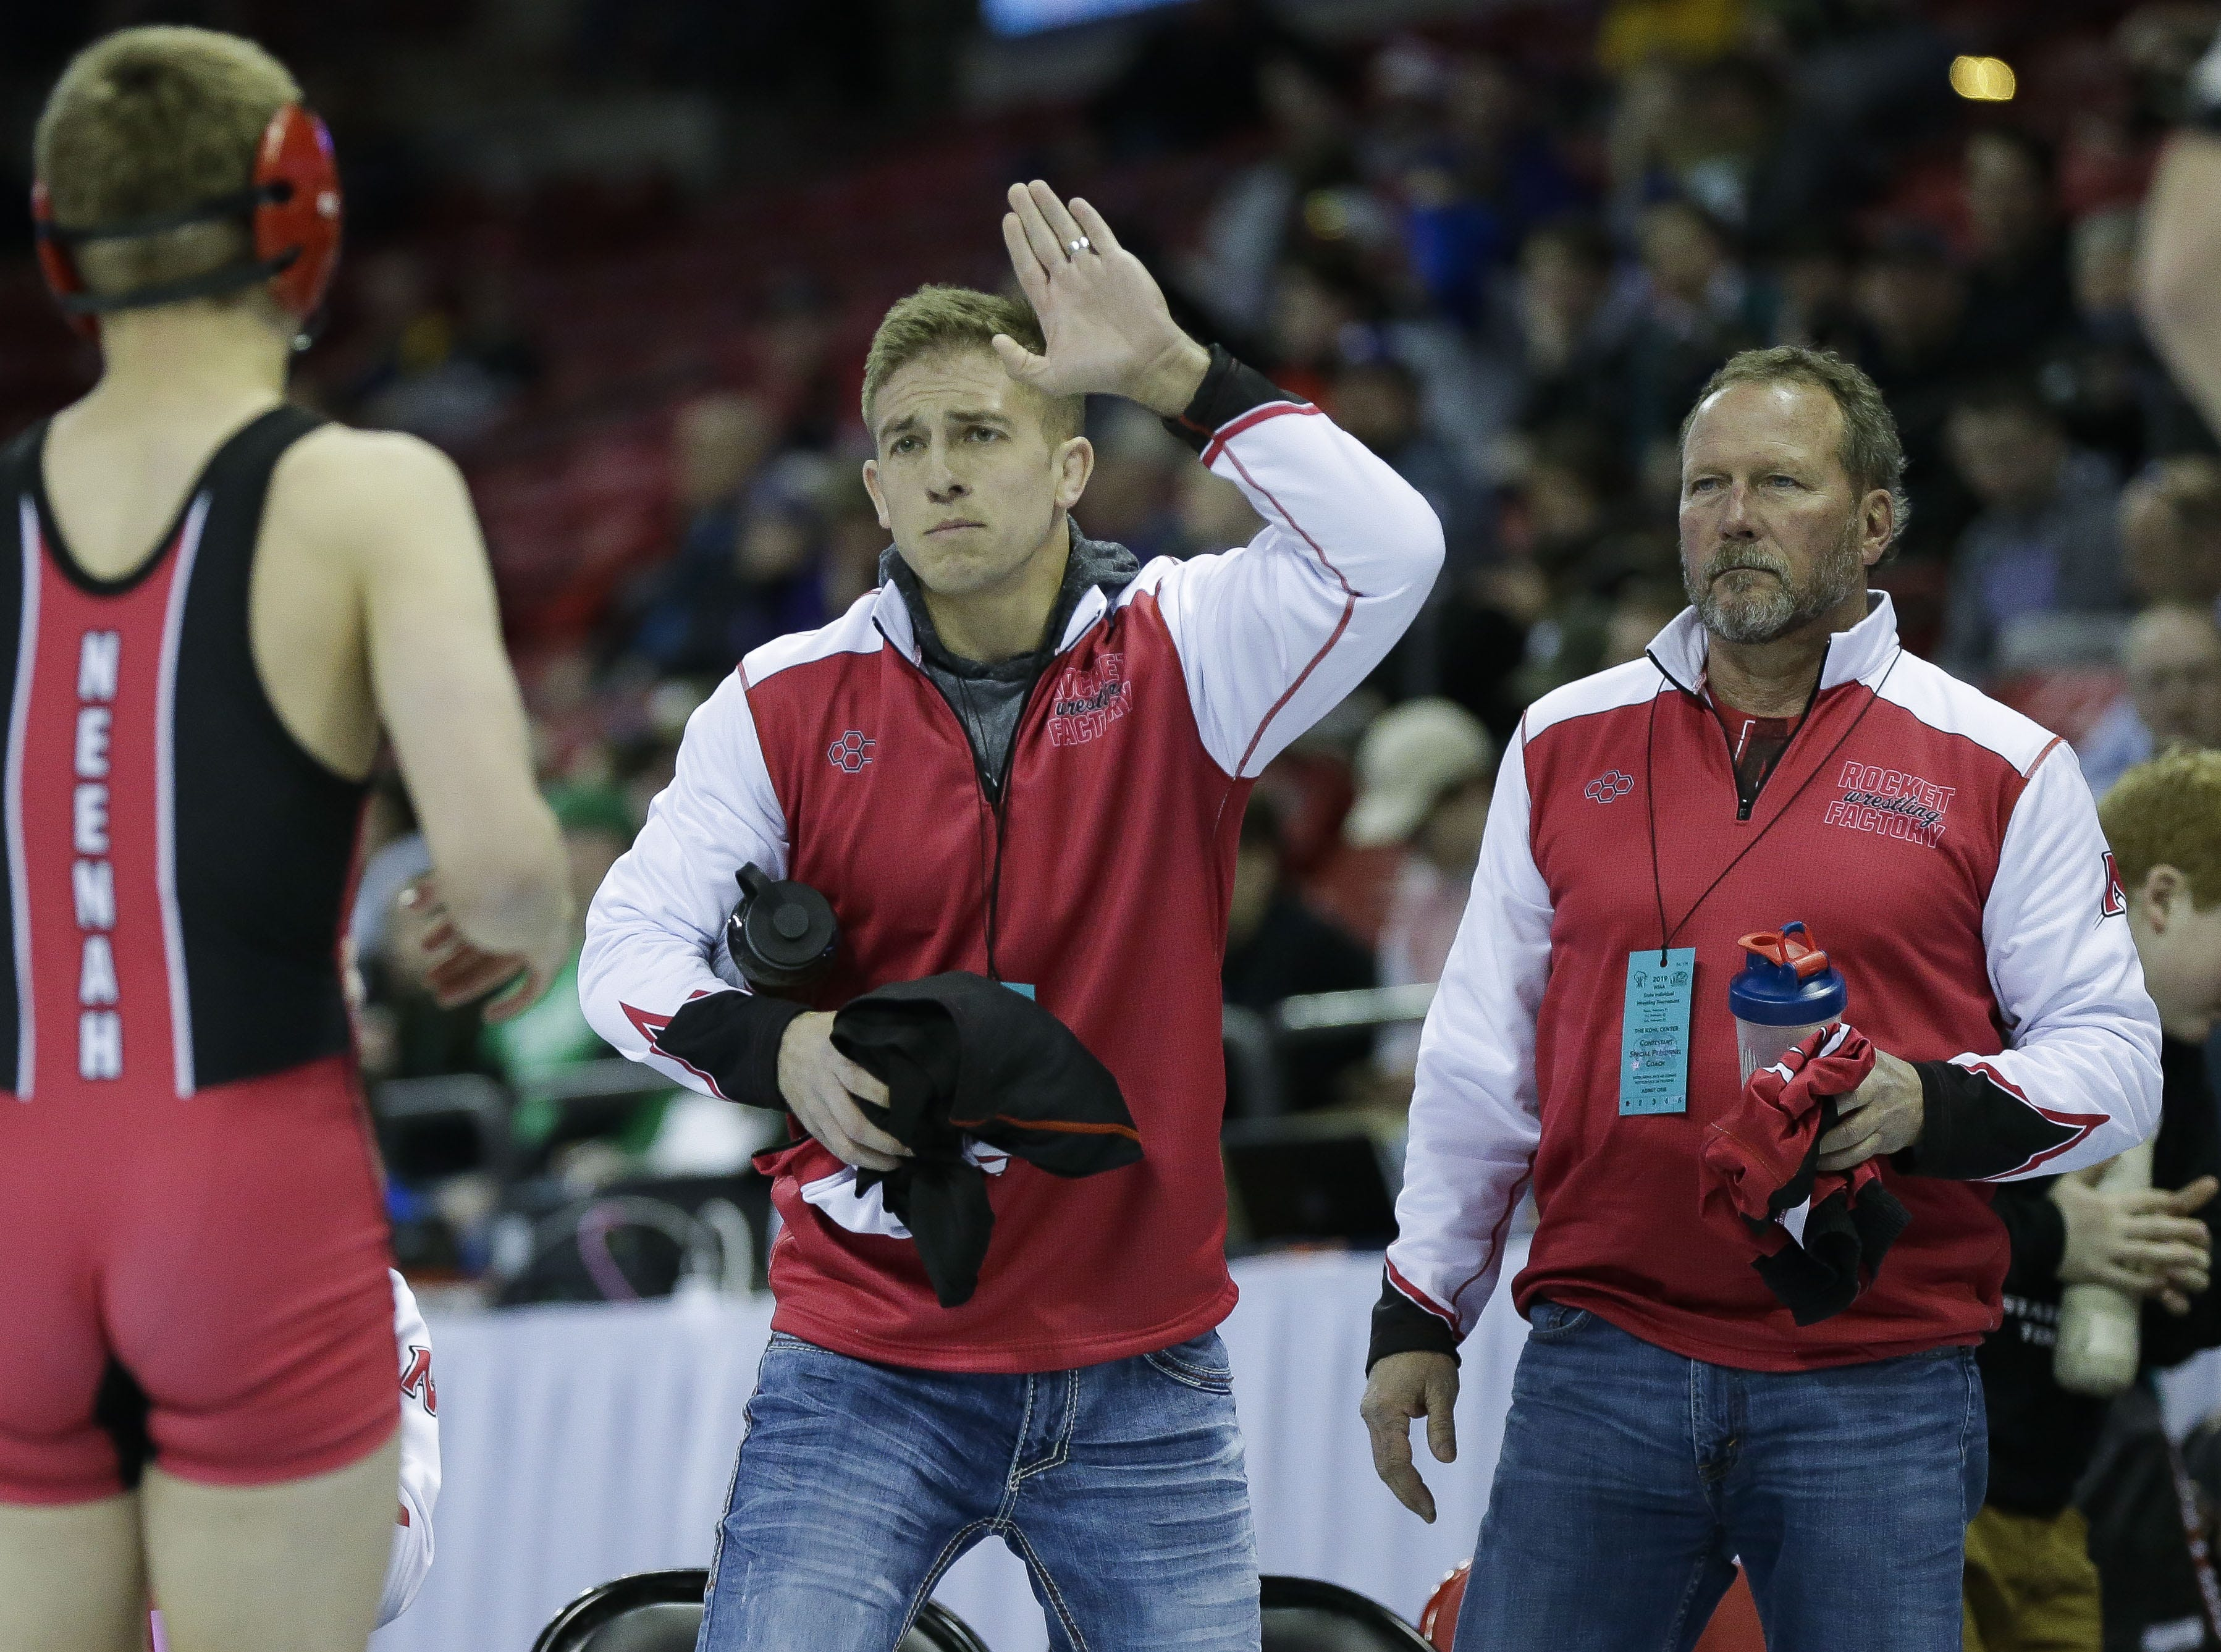 Neenah coaches congratulate Neenah's Drake Hayward after his win in a Division 1 126-pound preliminary match during the WIAA state wrestling tournament on Thursday, February 21, 2019, at the Kohl Center in Madison, Wis. Tork Mason/USA TODAY NETWORK-Wisconsin